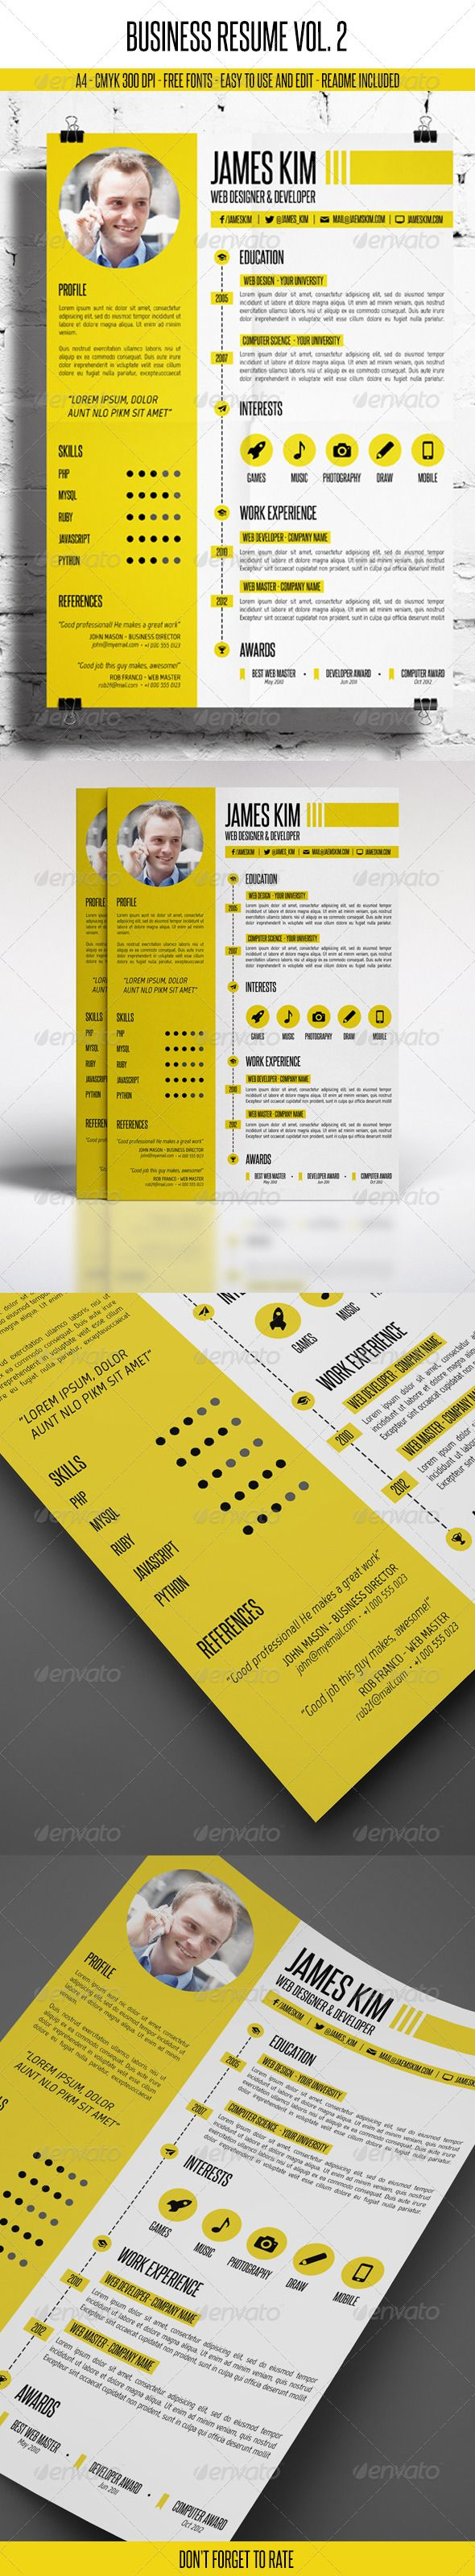 Business Resume Vol. 2 — Photoshop PSD #light #yellow • Available here → https://graphicriver.net/item/business-resume-vol-2/7248807?ref=pxcr